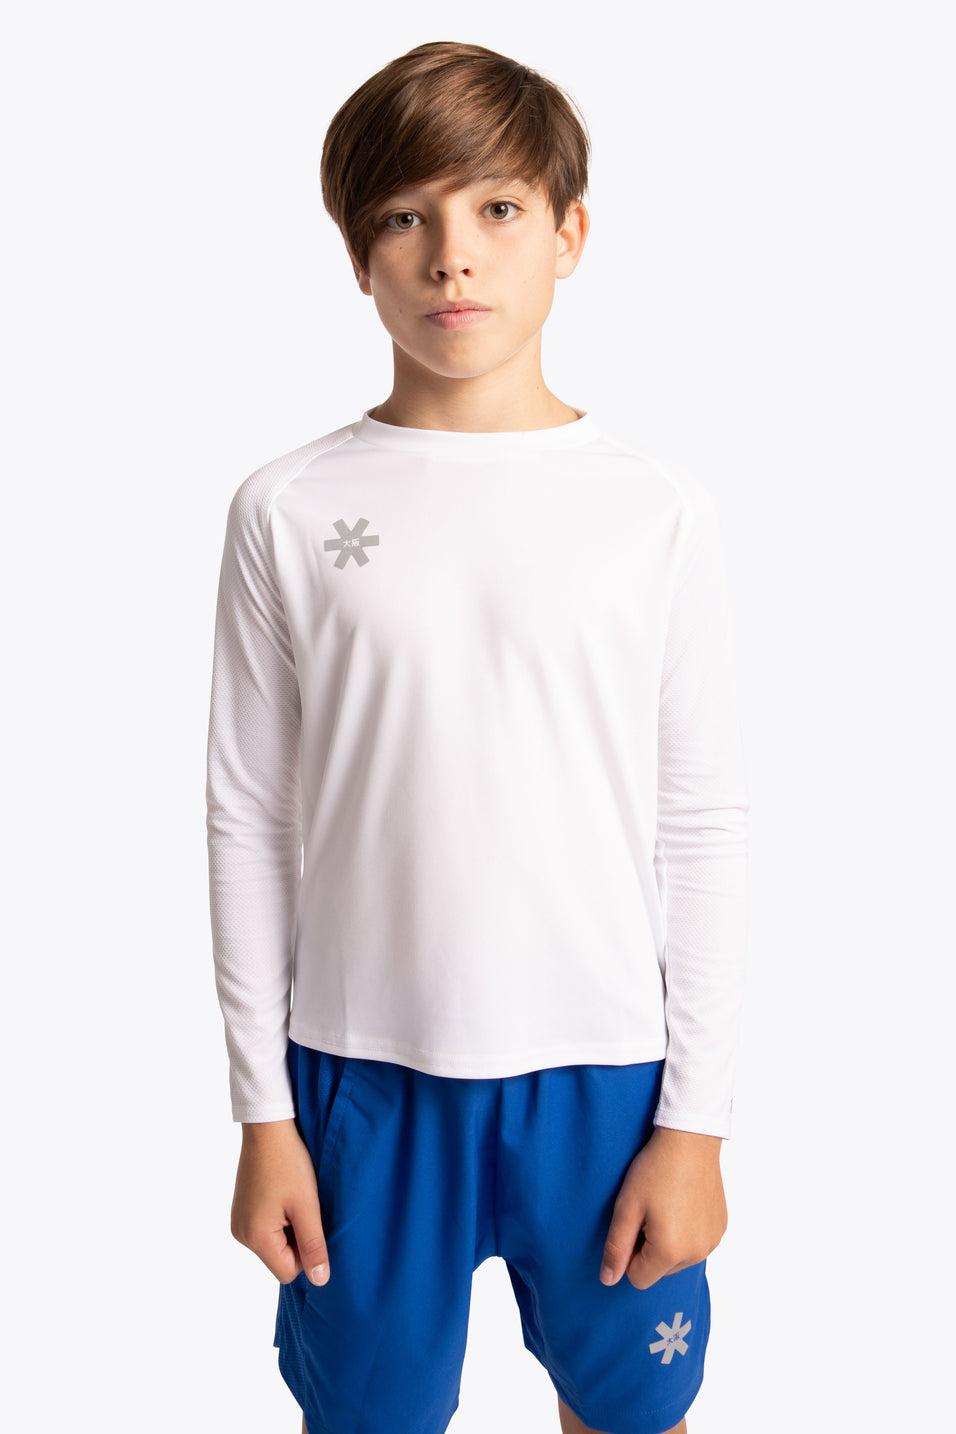 Osaka Kids training tee long sleeve white